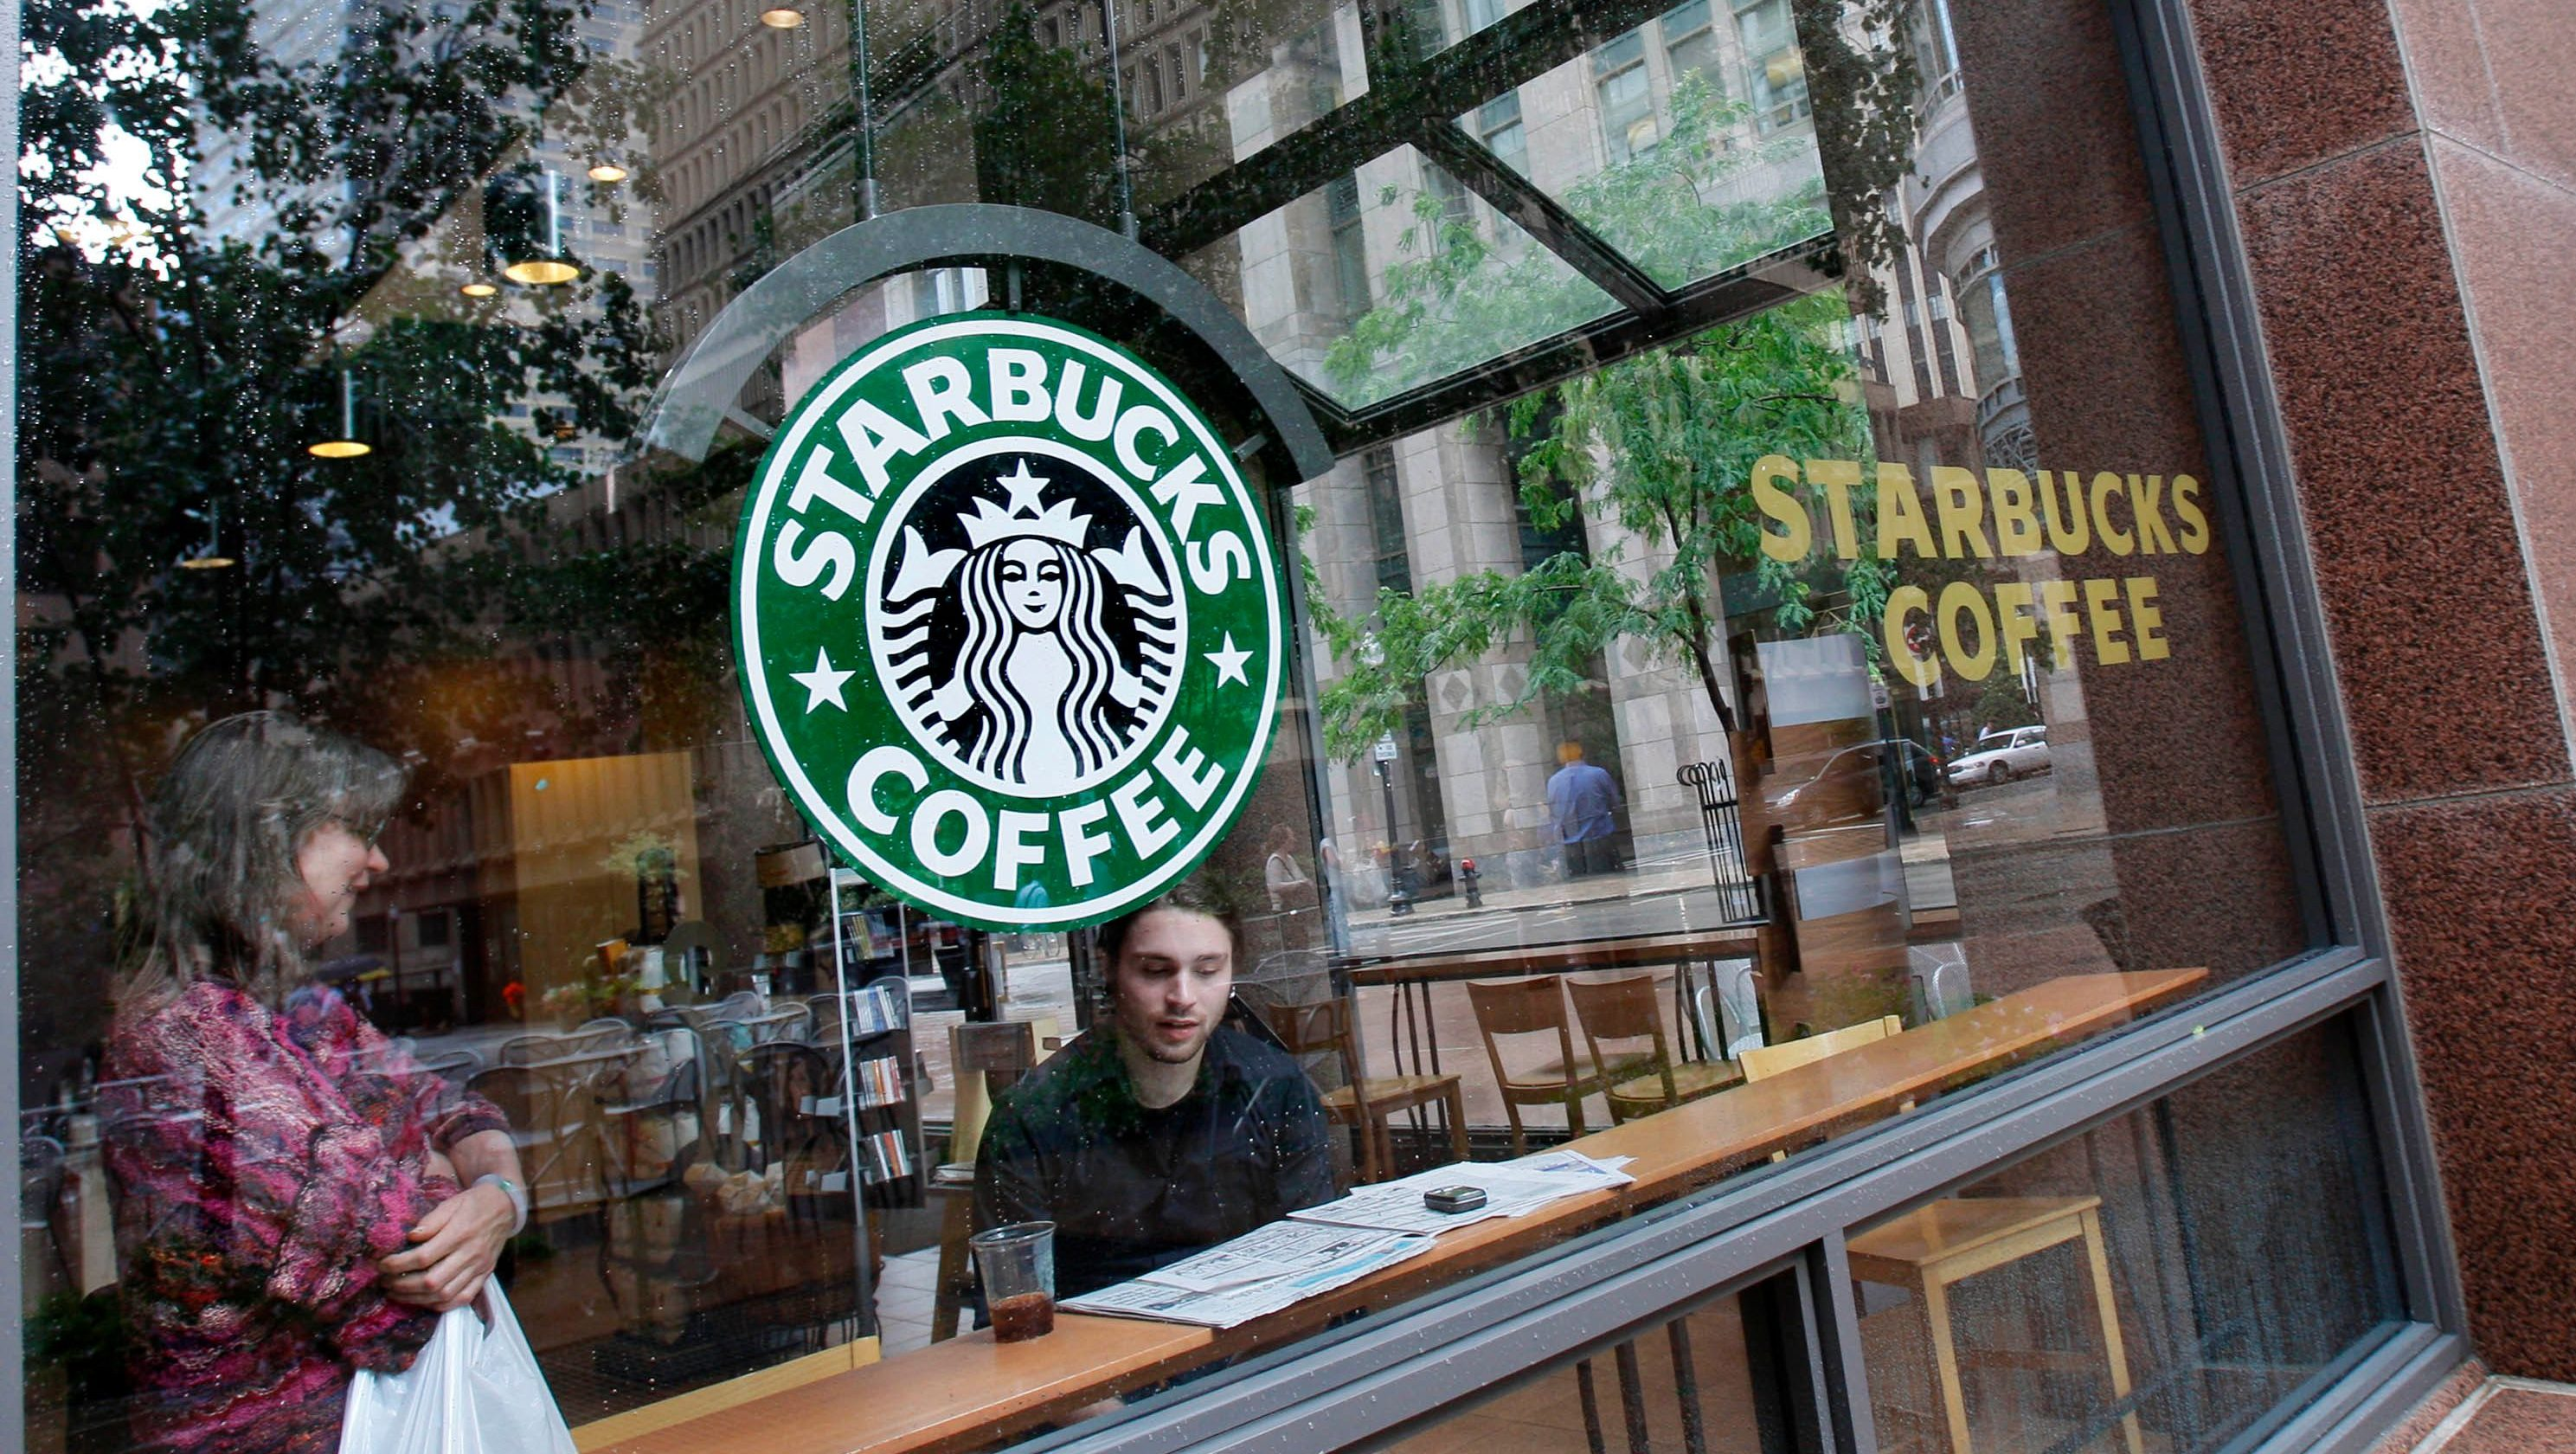 Patrons sit inside a Starbucks store in downtown Boston Tuesday, July 1, 2008. Starbucks Corp. said Tuesday it will close 600 stores in the United States in the next year and cut back the number of new stores it had planned to open. (AP Photo/Elise Amendola)